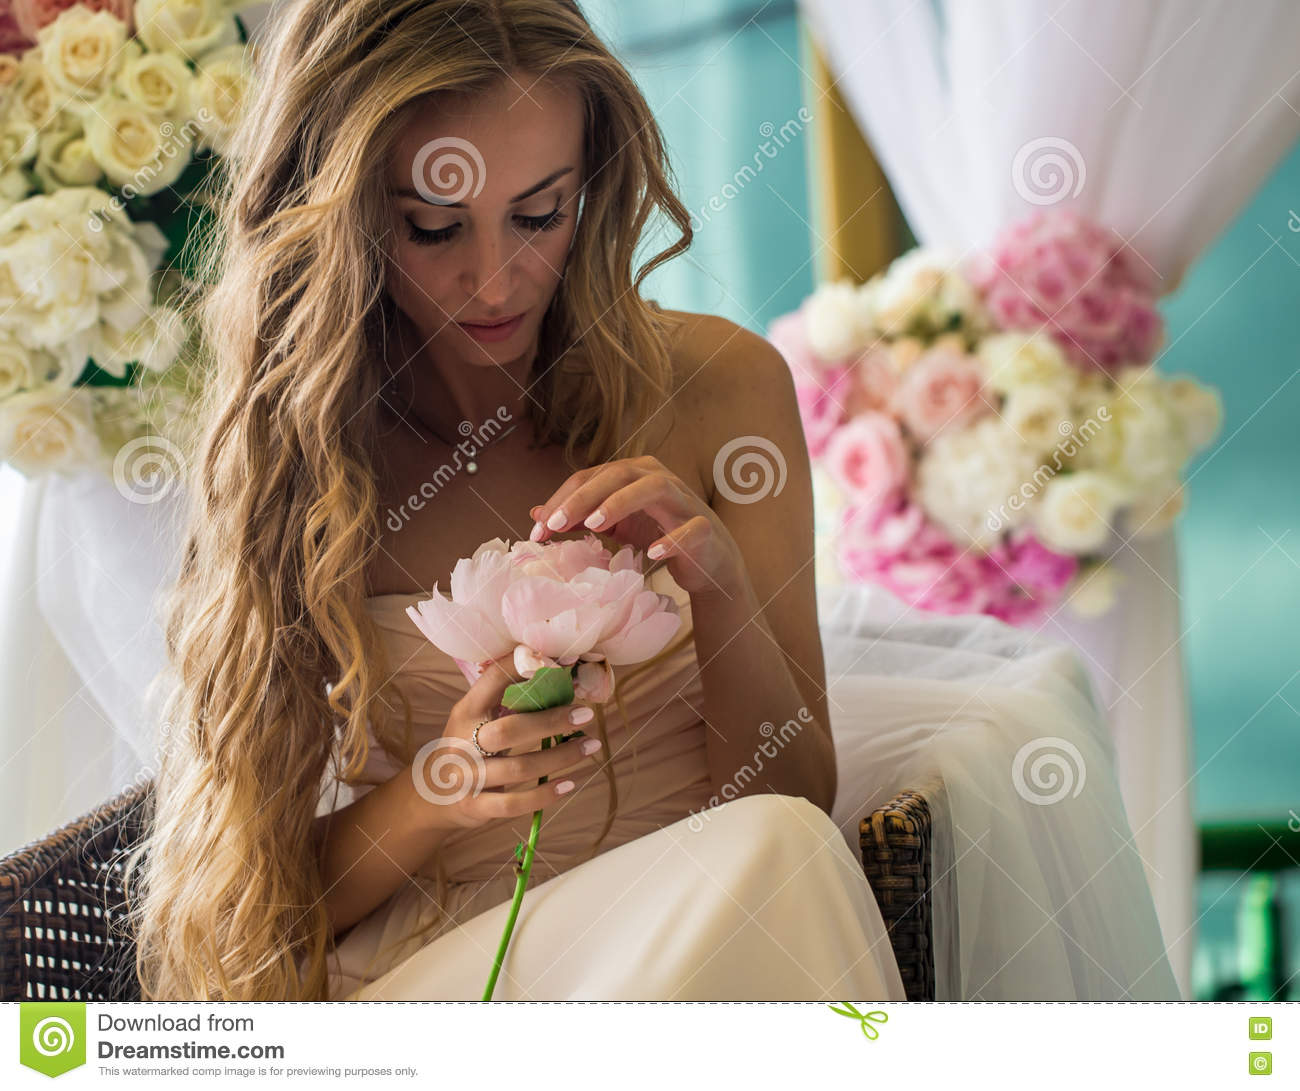 Beautiful young girl with long hair flowers in hand stock photo download beautiful young girl with long hair flowers in hand stock photo image of greens izmirmasajfo